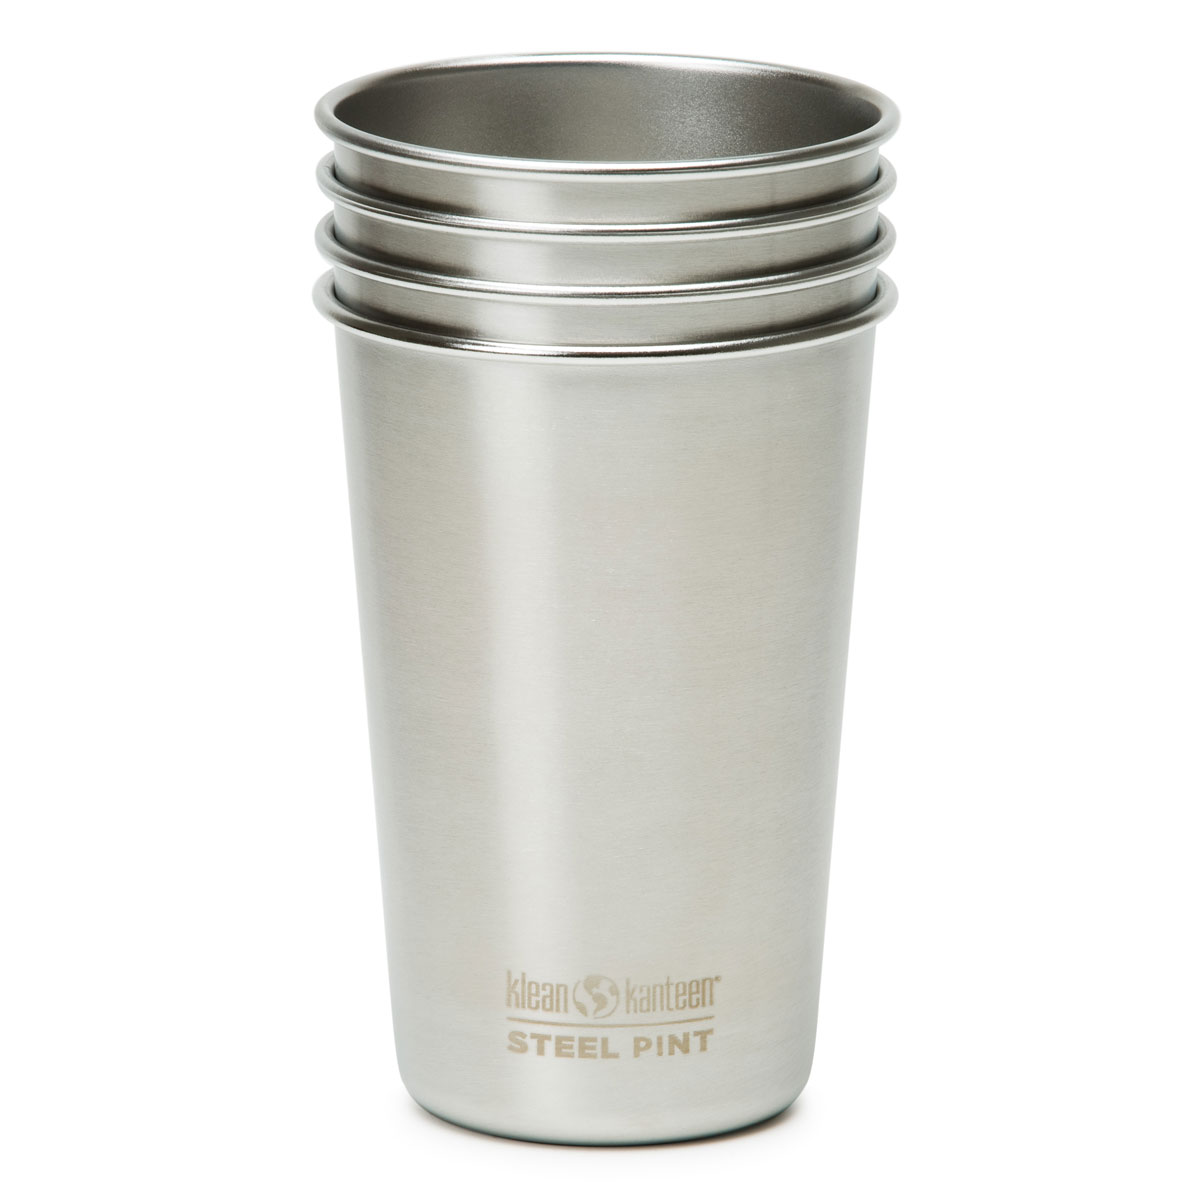 klean kanteen stainless steel pint cups the green head. Black Bedroom Furniture Sets. Home Design Ideas